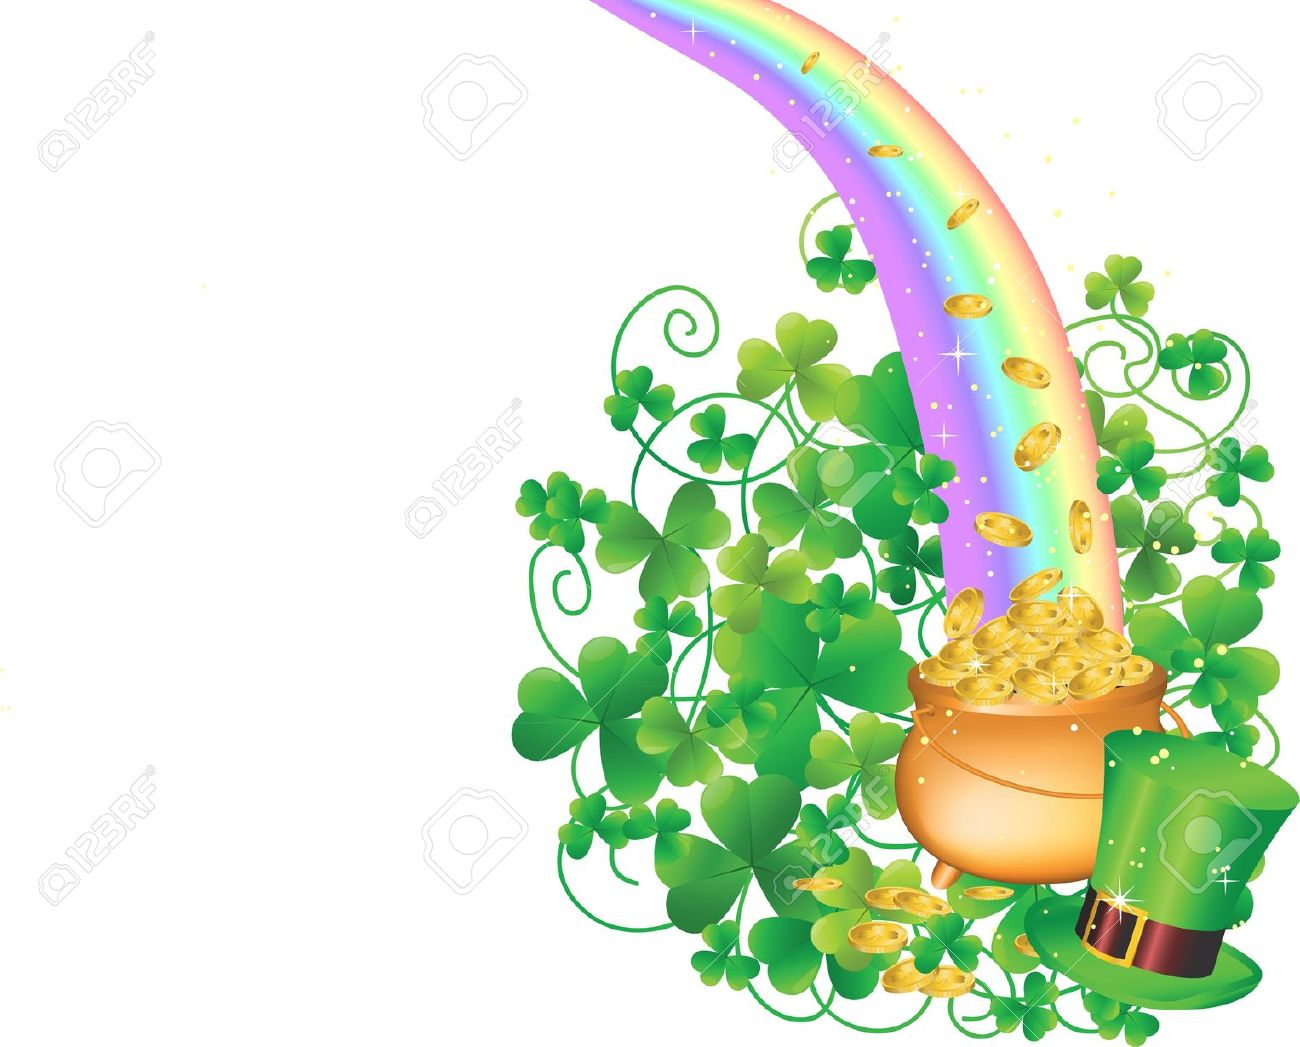 Green Pot Of Gold Clipart Green plant rainbow cl...